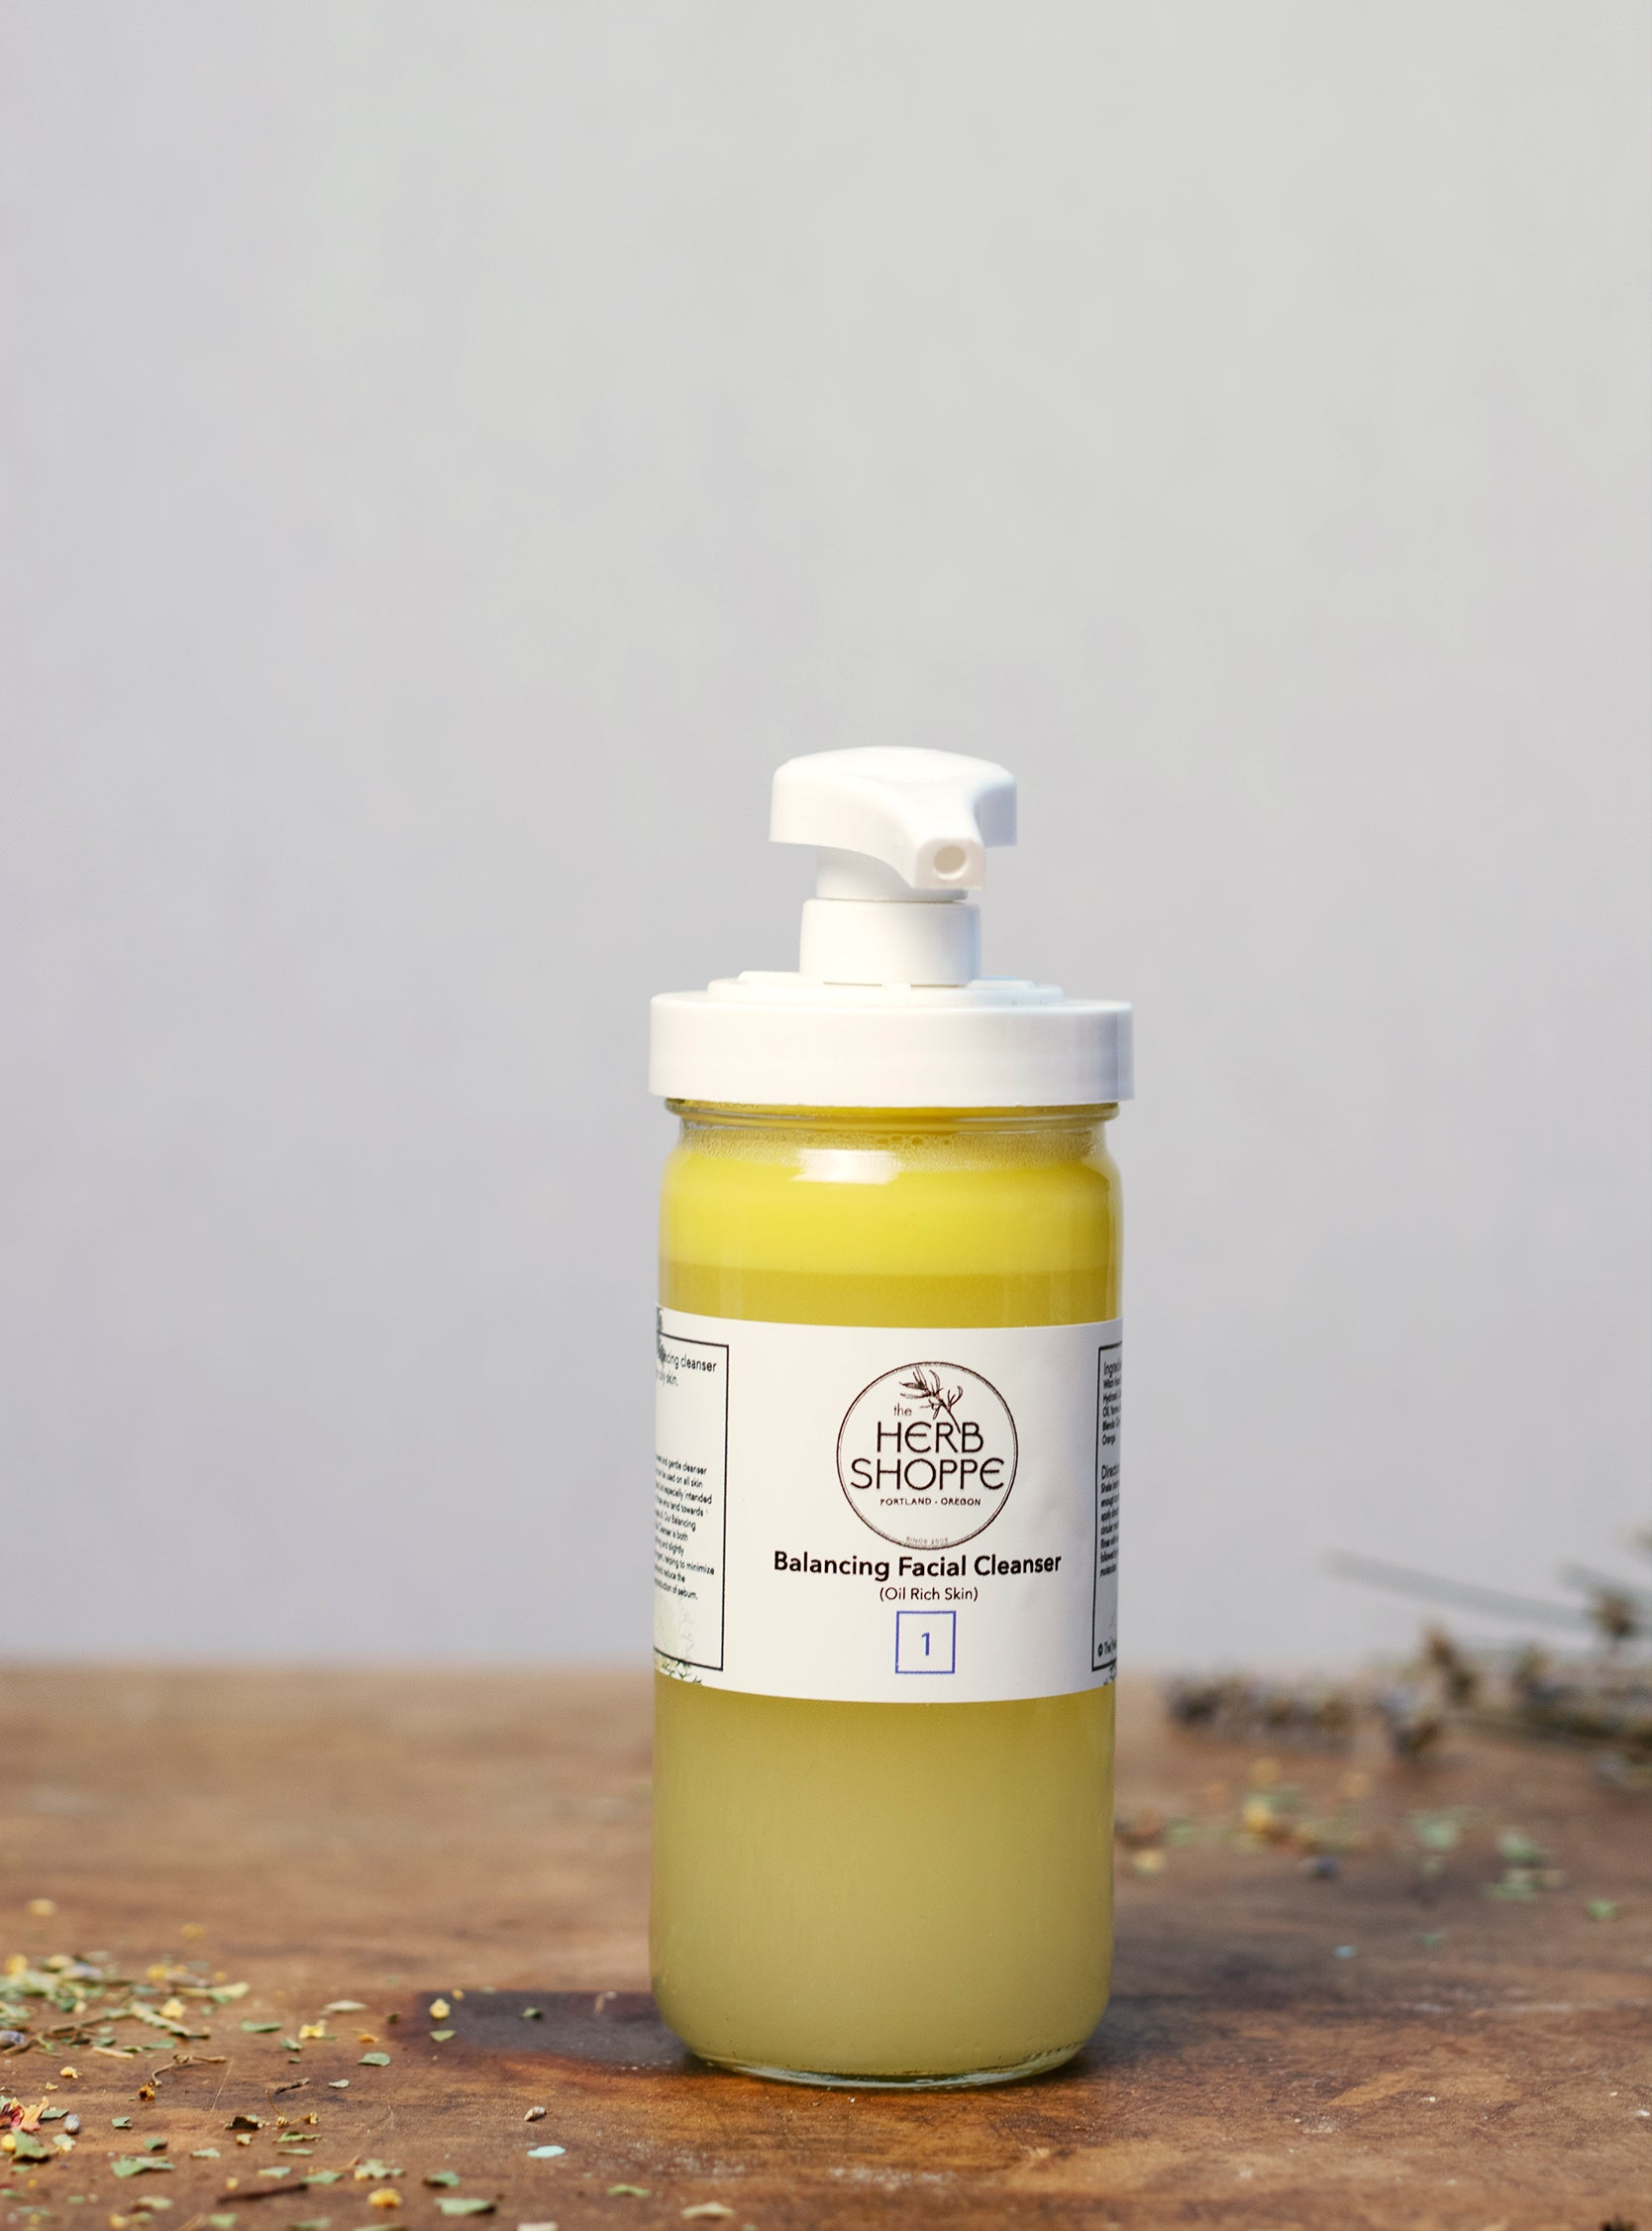 Balancing Facial Cleanser-Oily Skin